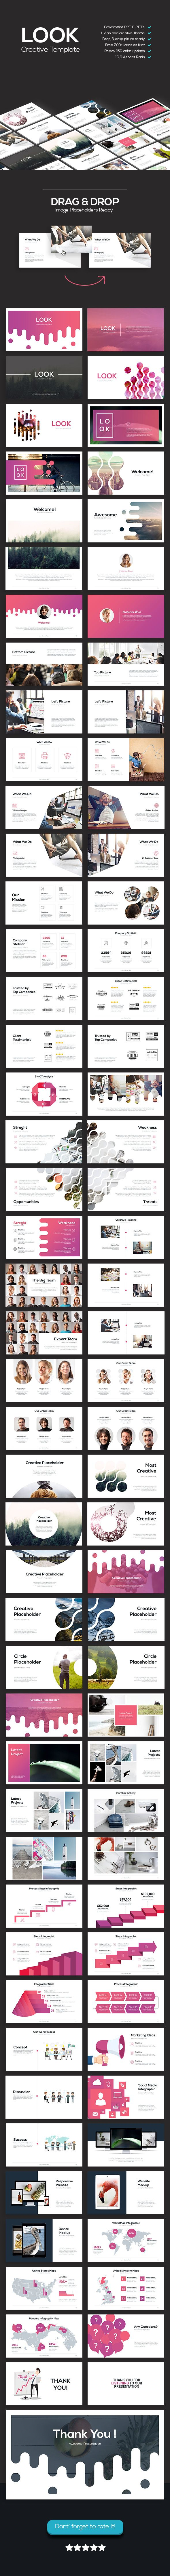 Look - Creative Theme - PowerPoint Templates Presentation Templates